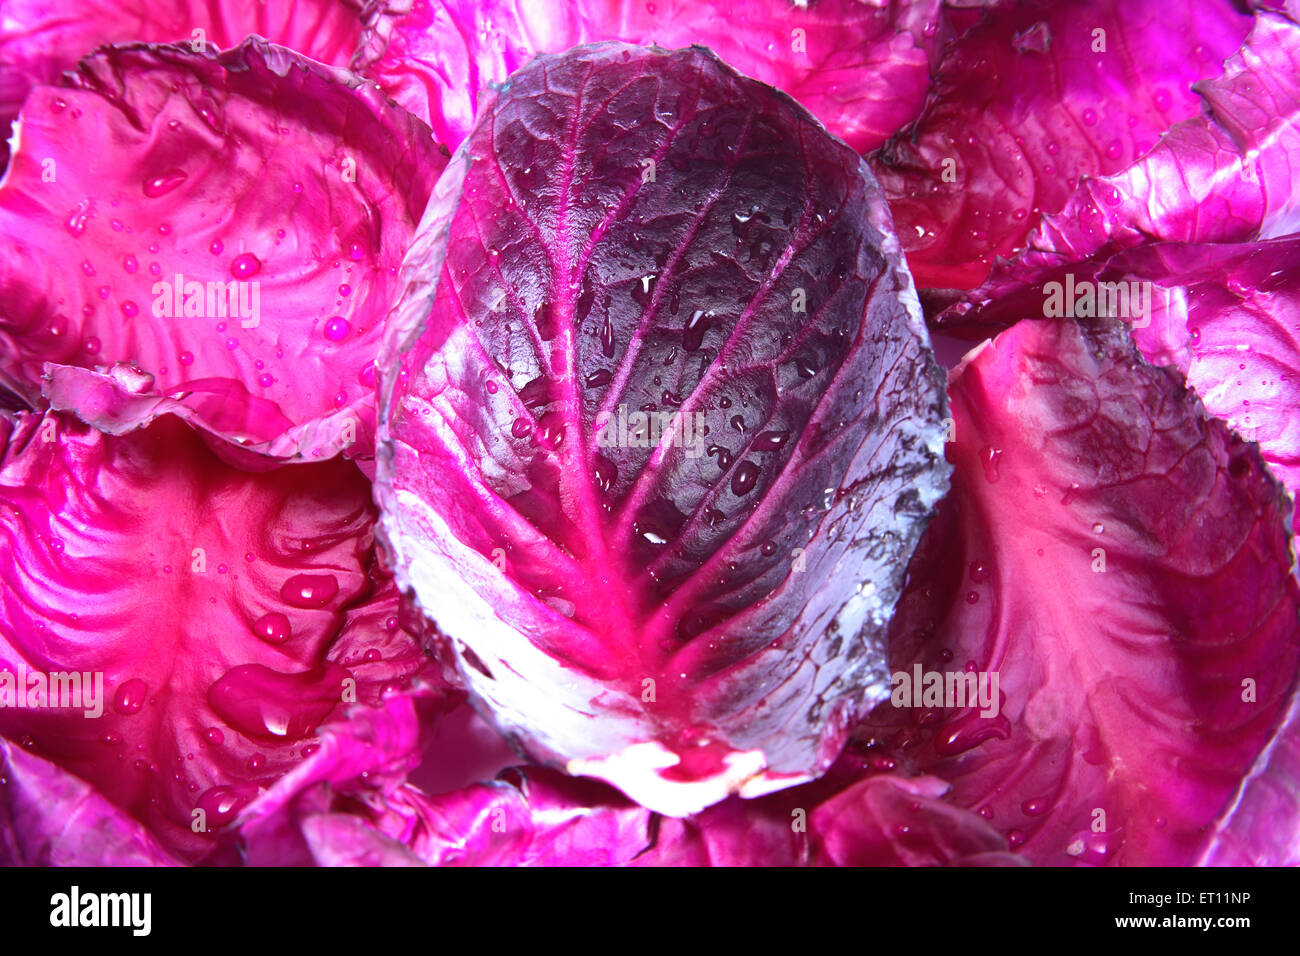 Vegetable ; pattagobi cabbage purple reddish blue violet - Stock Image